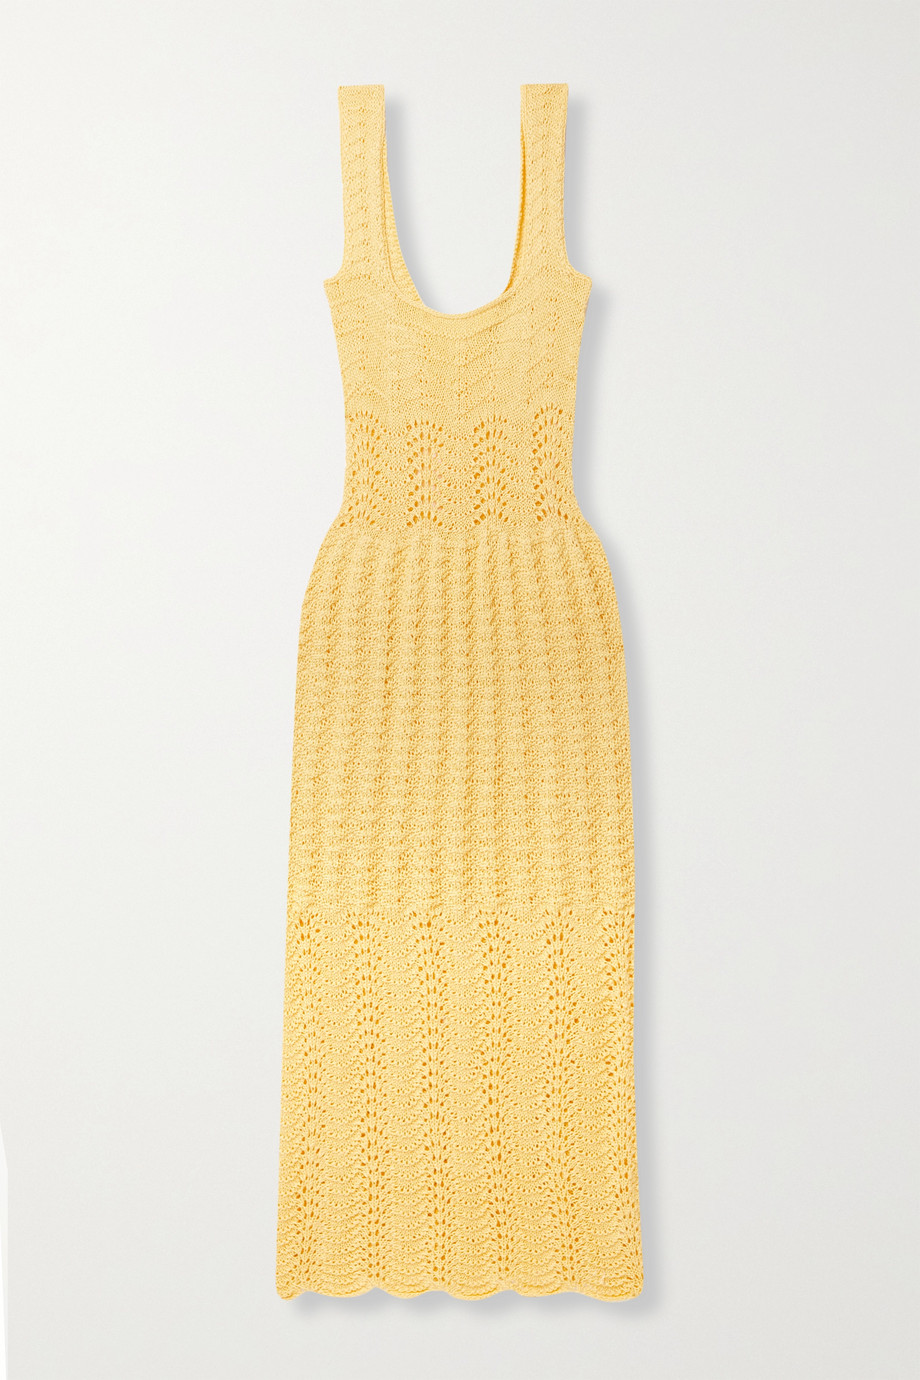 Savannah Morrow The Label + NET SUSTAIN Valentina crocheted organic cotton midi dress